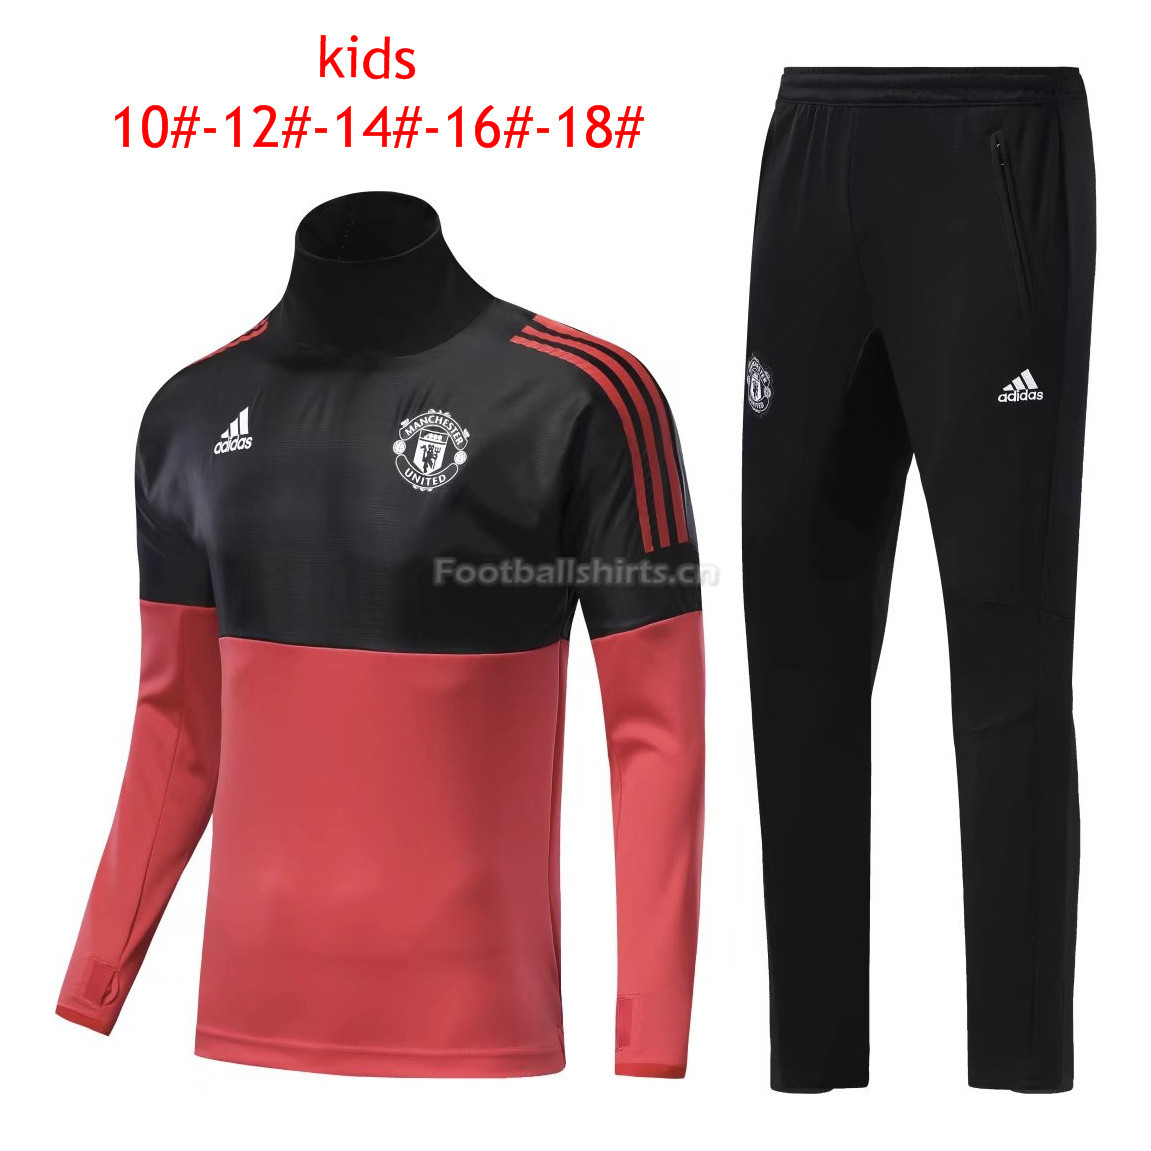 Kids Manchester United Training Suit Turtle Neck Black/Red 2017/